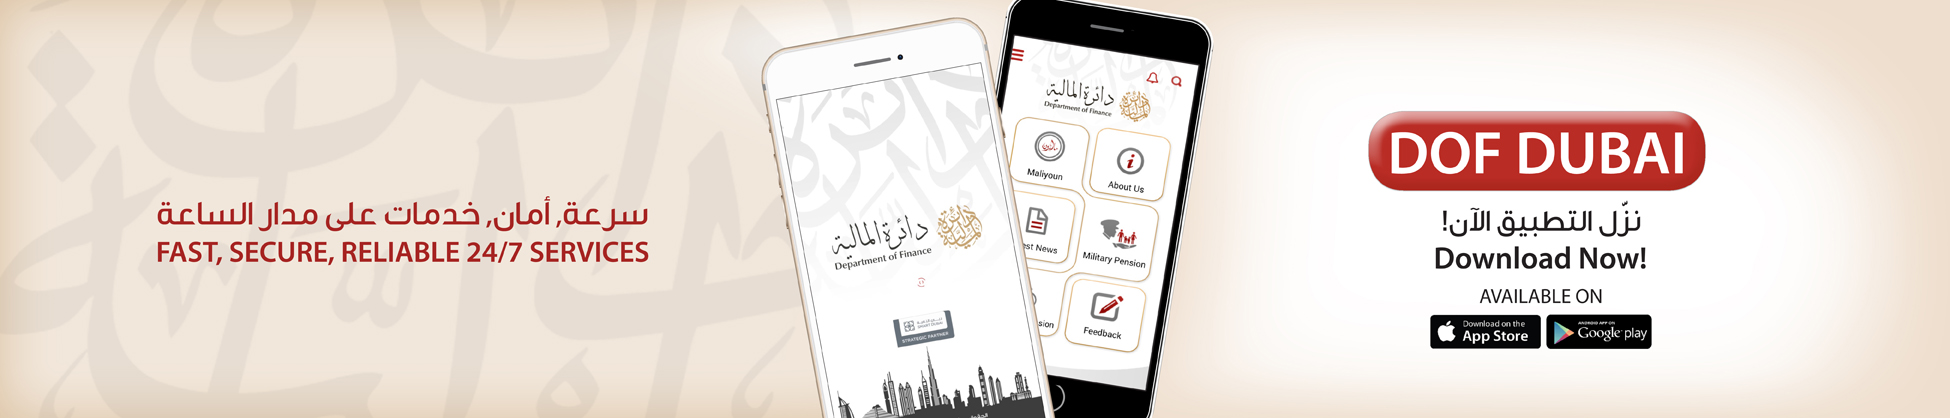 Download DOF Mobile Application